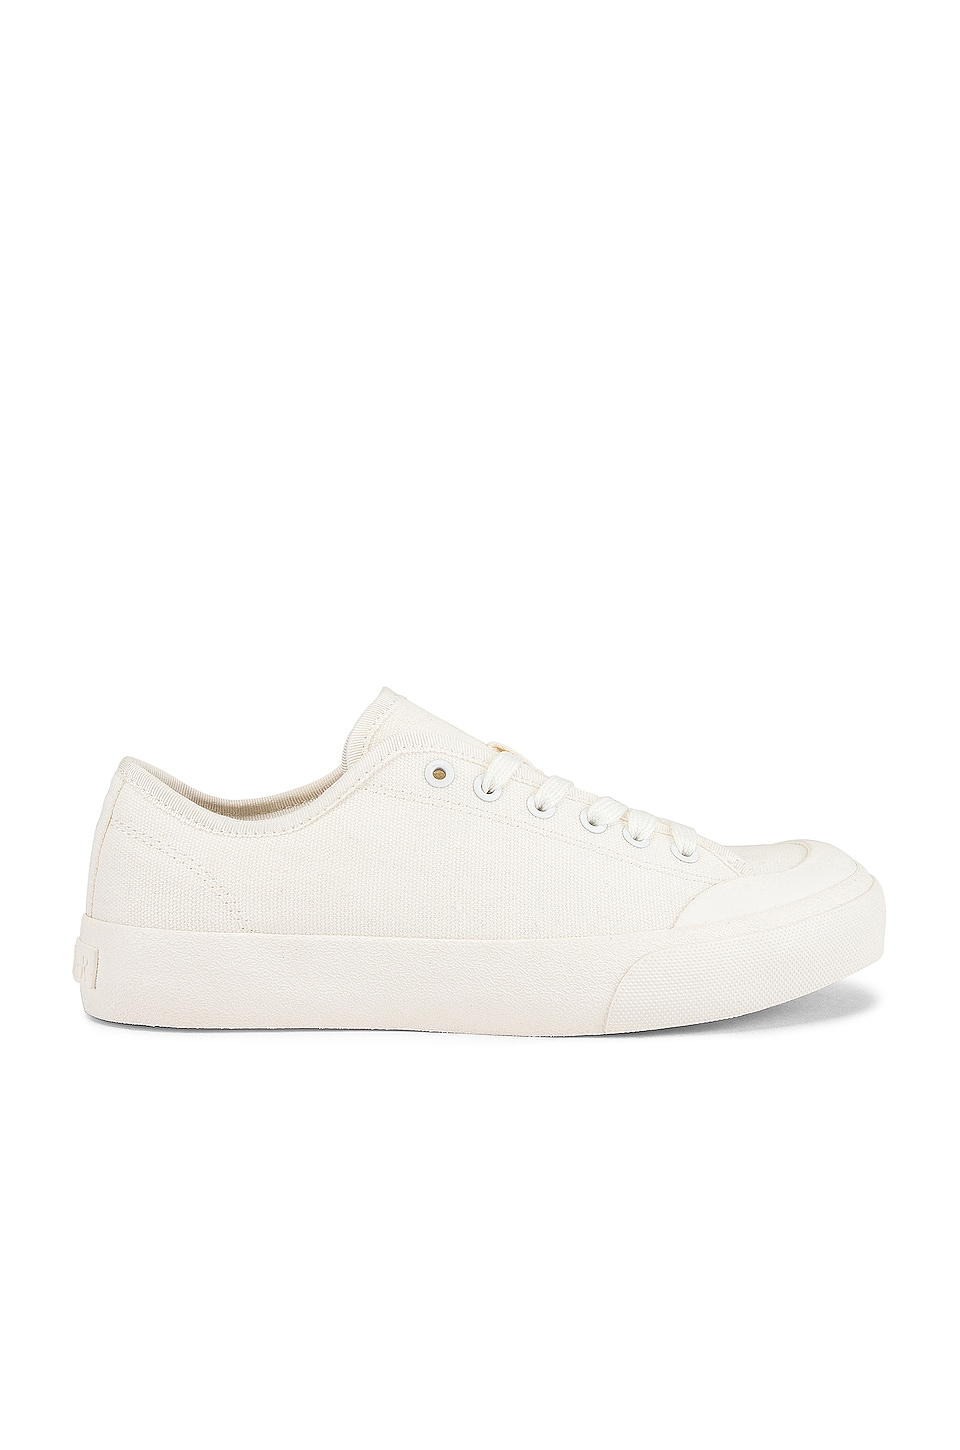 Dolce Vita Clear Bryton Sneaker in White